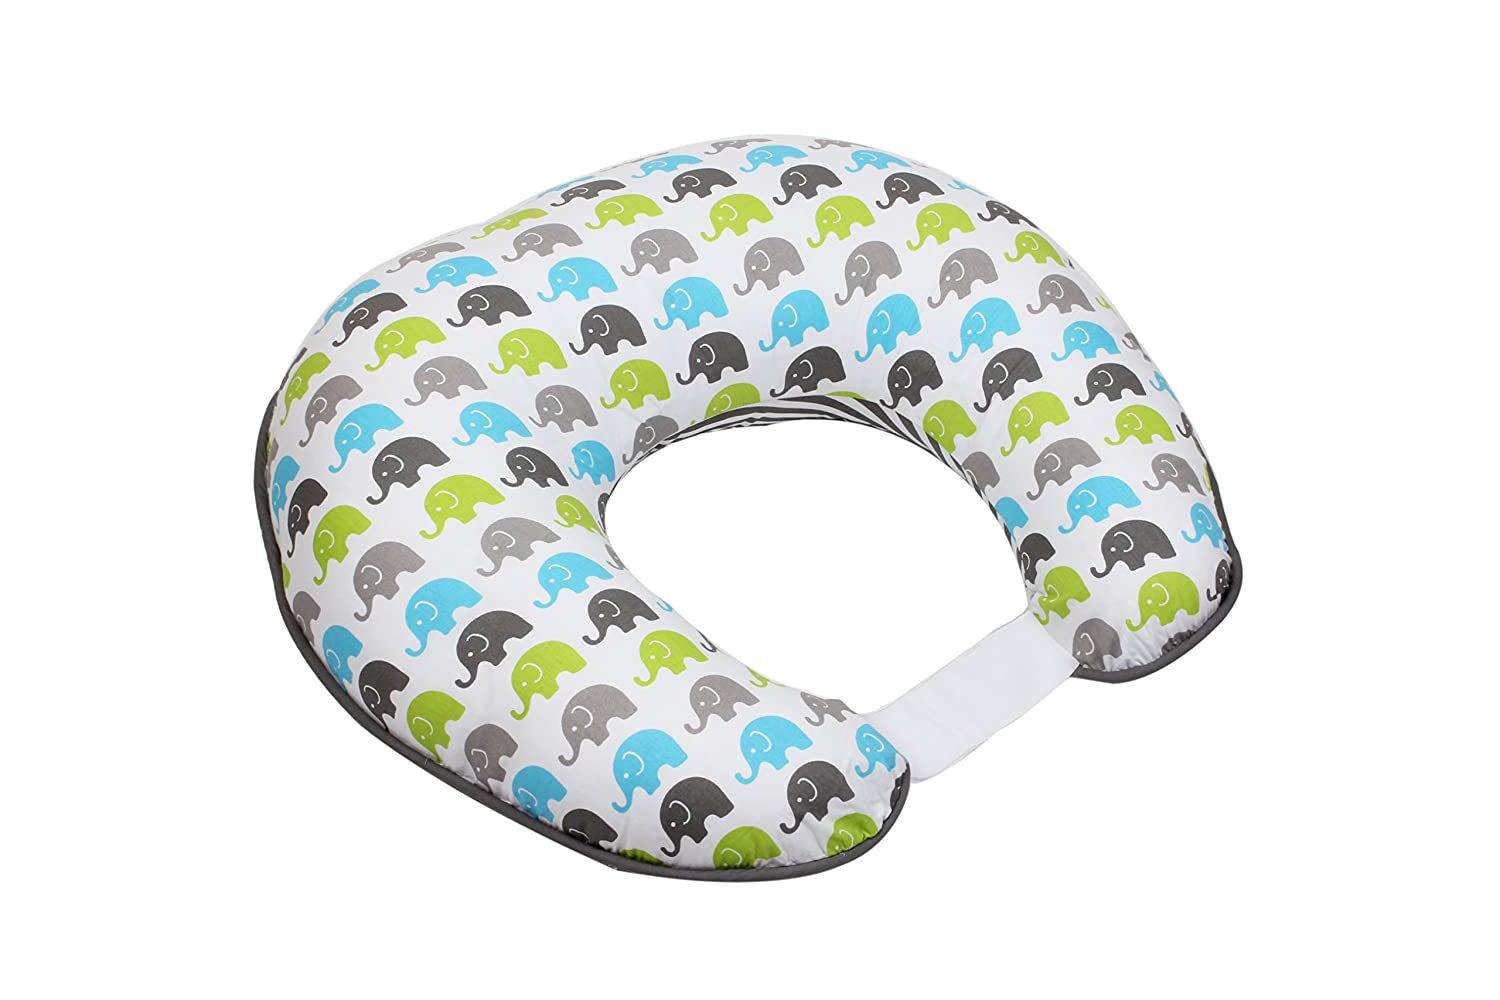 Bacati - Elephants Aqua/Lime/Grey Nursing Pillow Cover Ultra-Soft 100% Cotton Fabric in a Fashionable Two-Sided Design, Fits All Hugster Nursing Pillows and Positioners